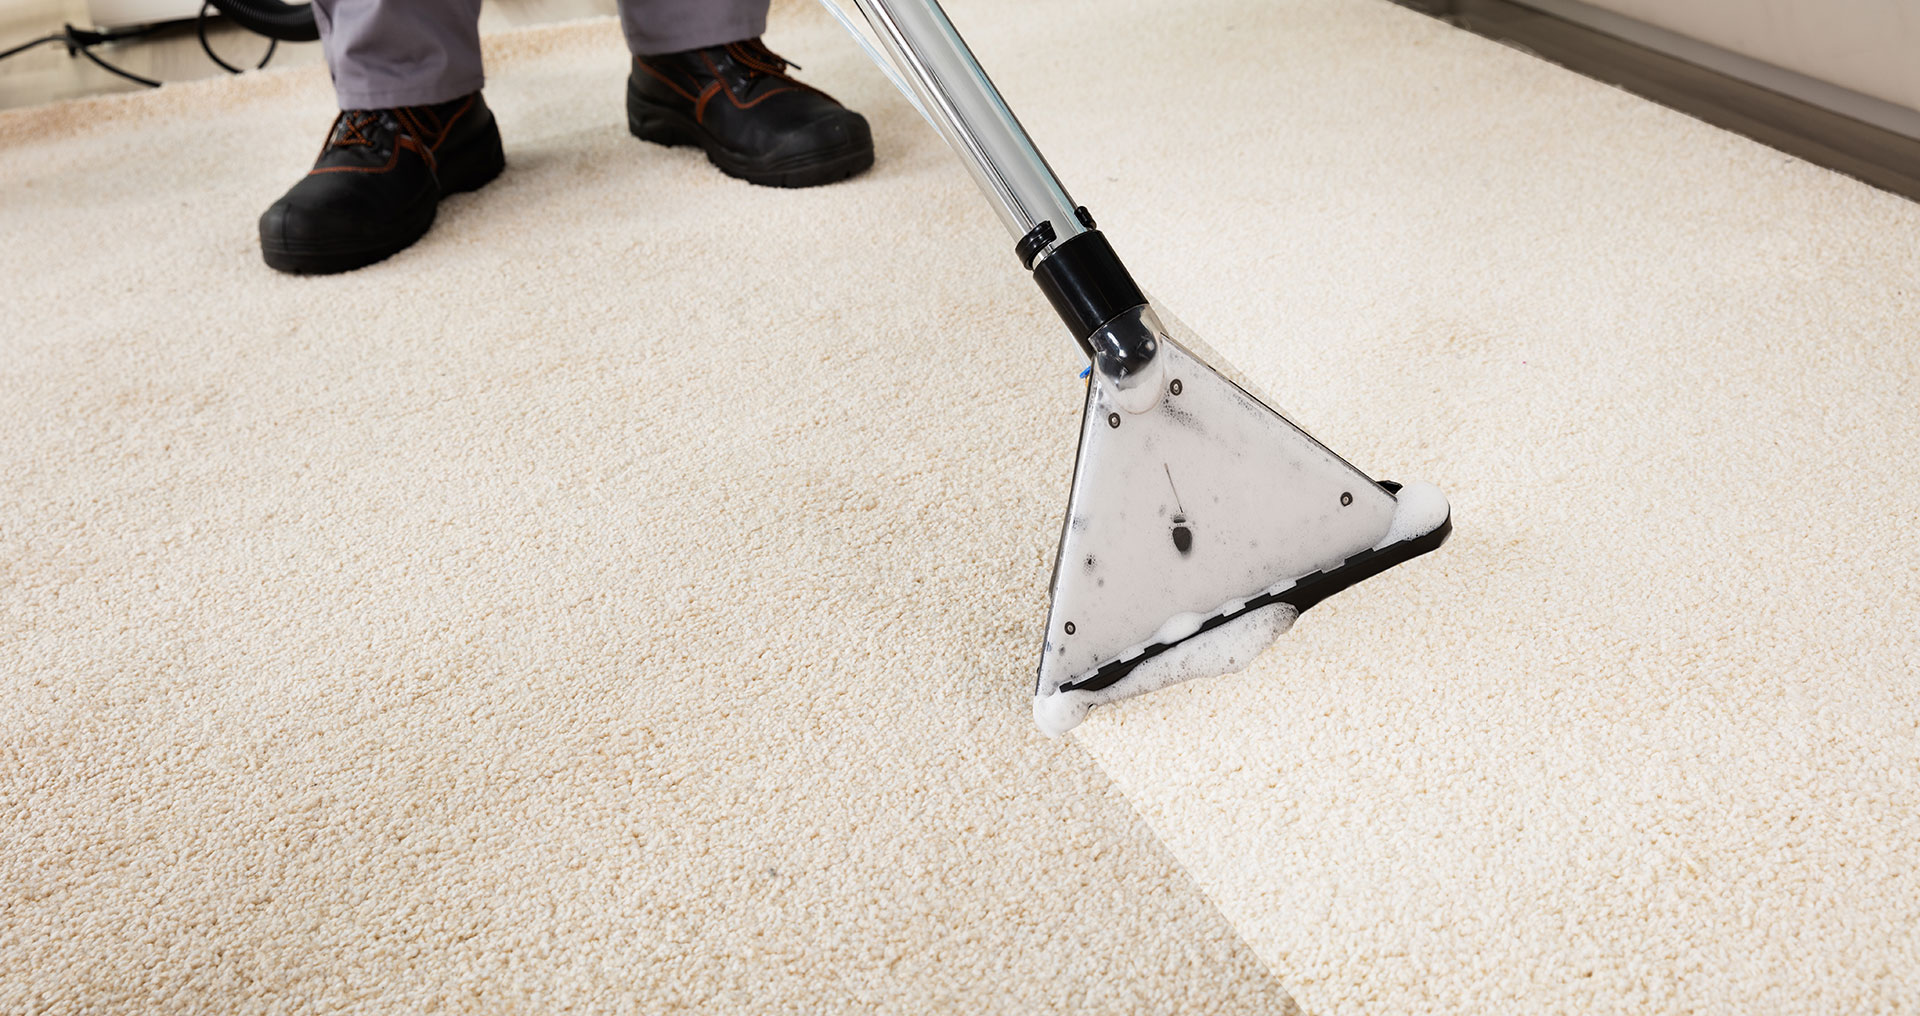 Furniture Carpet Cleaning Ypsilanti Saline Ann Arbor Mi